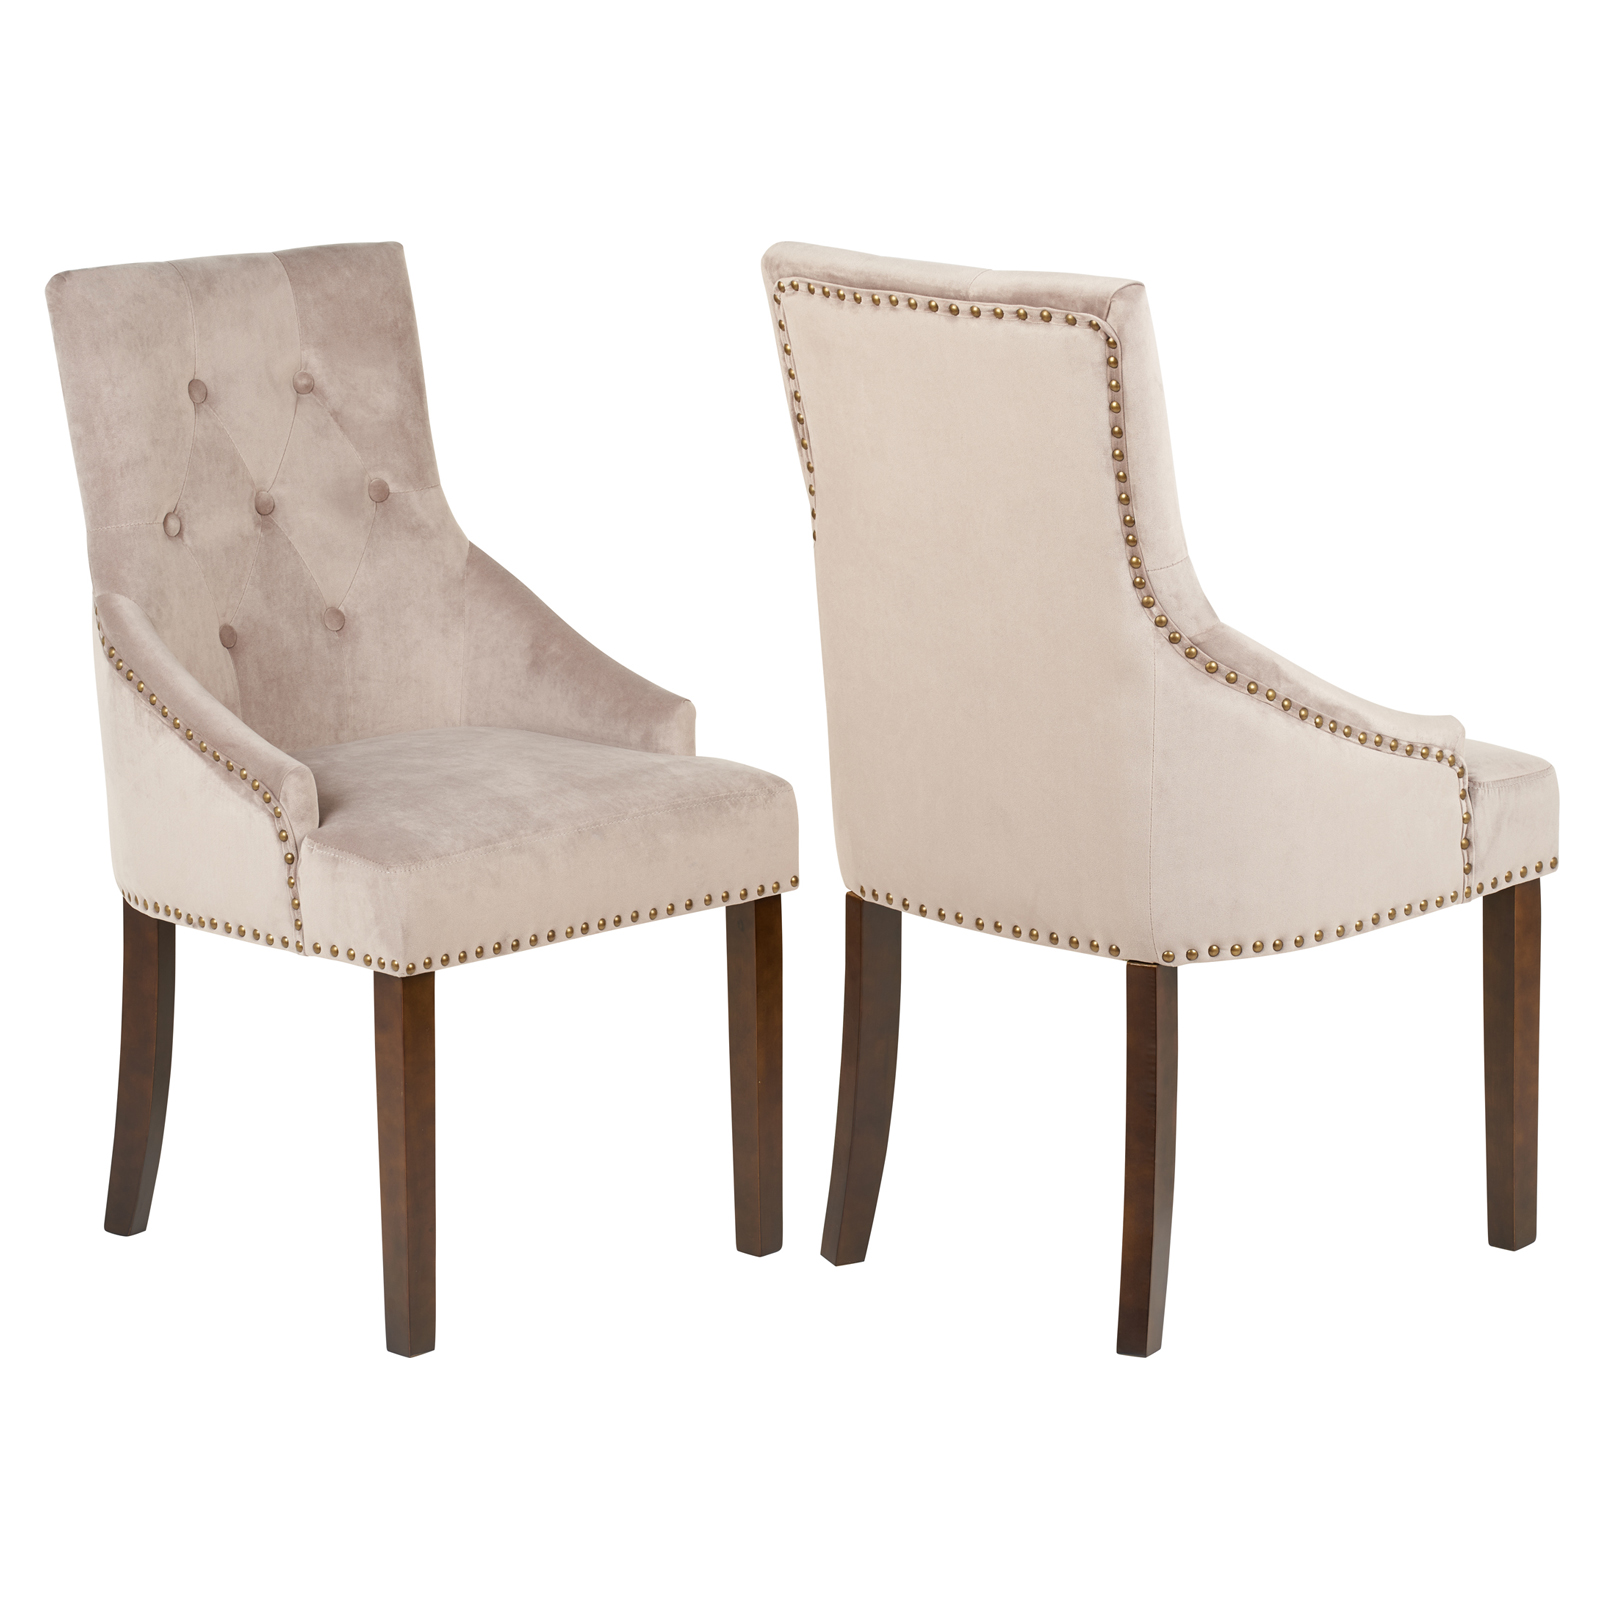 Studded Dining Chairs Details About Hartleys Pair Of Taupe Velvet Dining Chairs Studded Button Back Grey Brown Chair